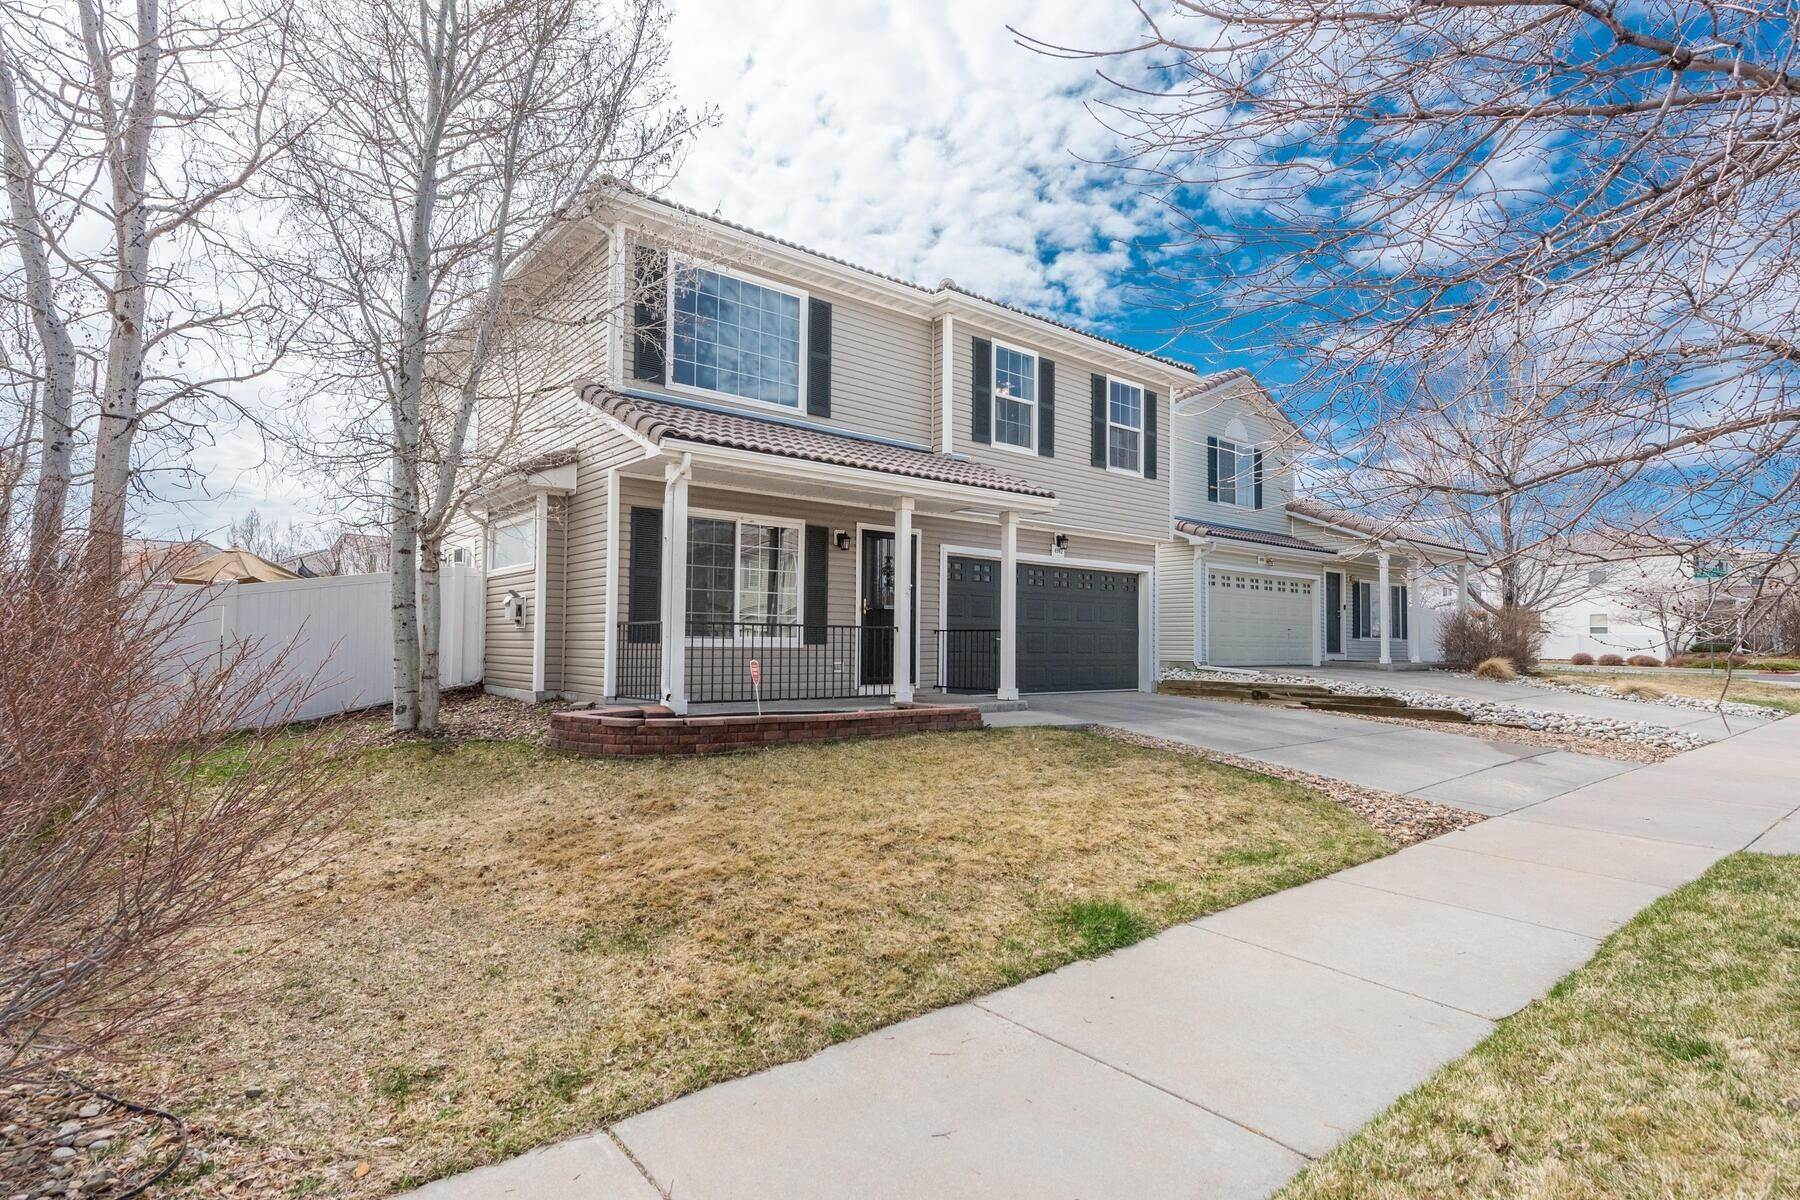 Single Family Homes for Sale at Gorgeous & Extremely Well Maintained Green Valley Home! 4982 Fundy Street Denver, Colorado 80249 United States